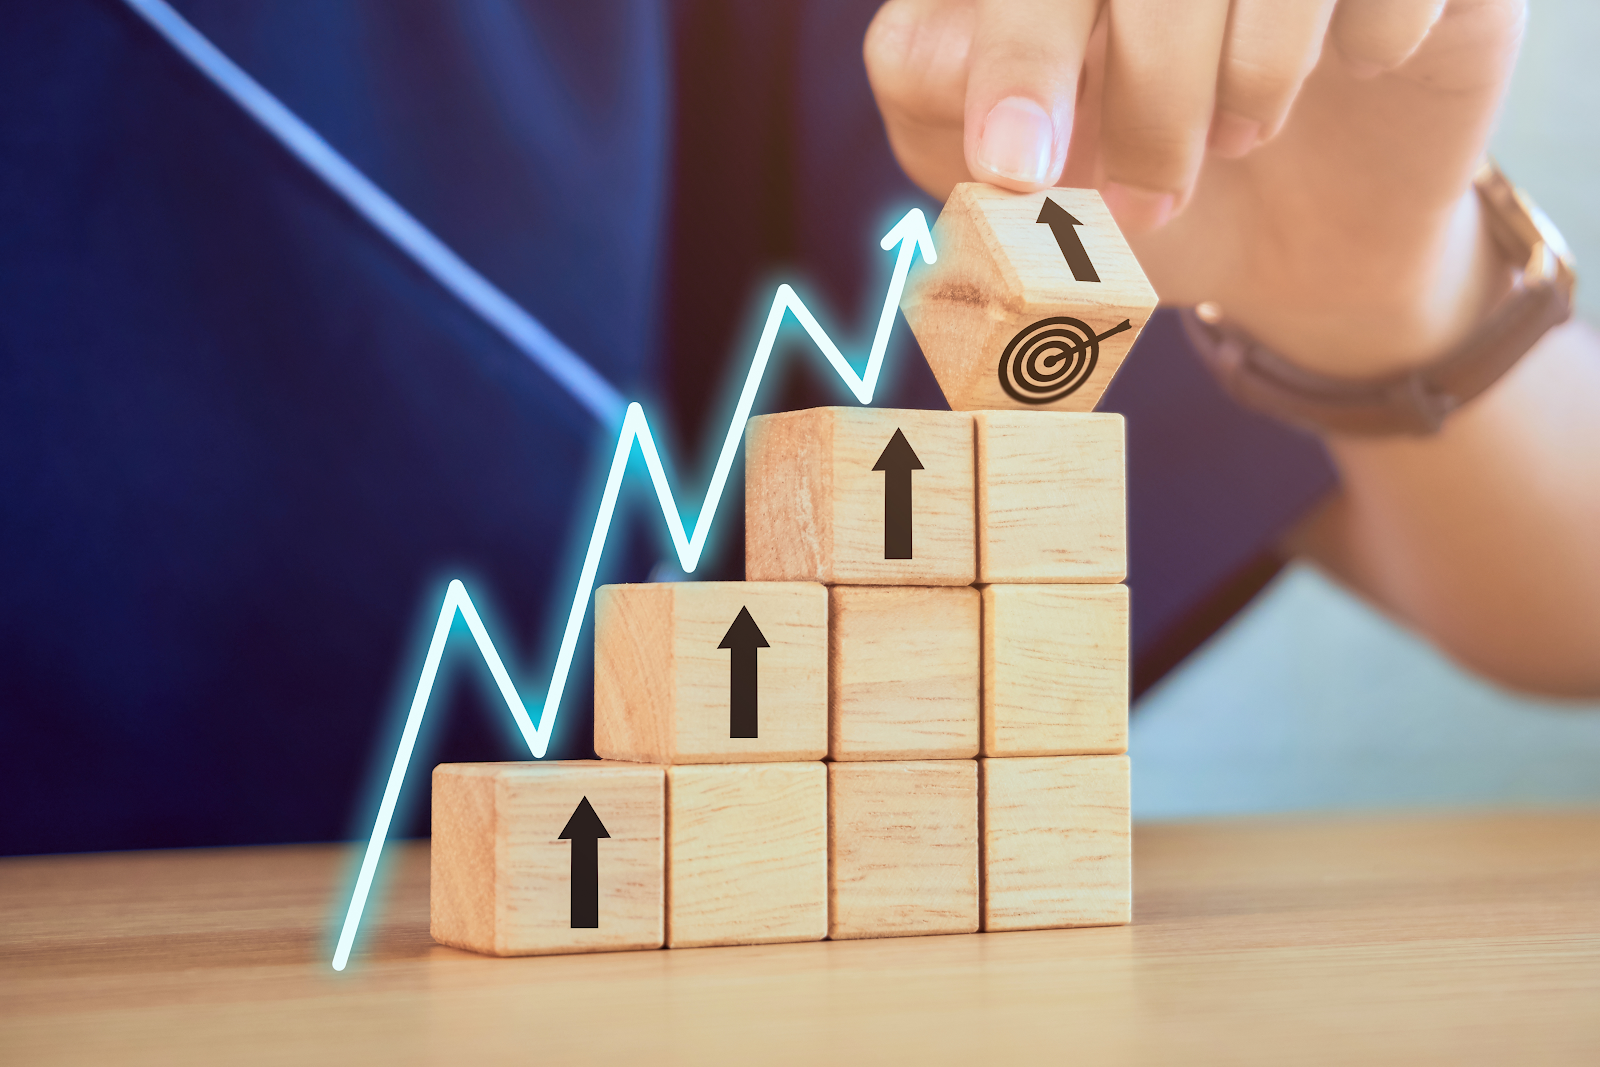 Alt Text: Blocks with arrows pointing up, symbolizing investment goals and growth